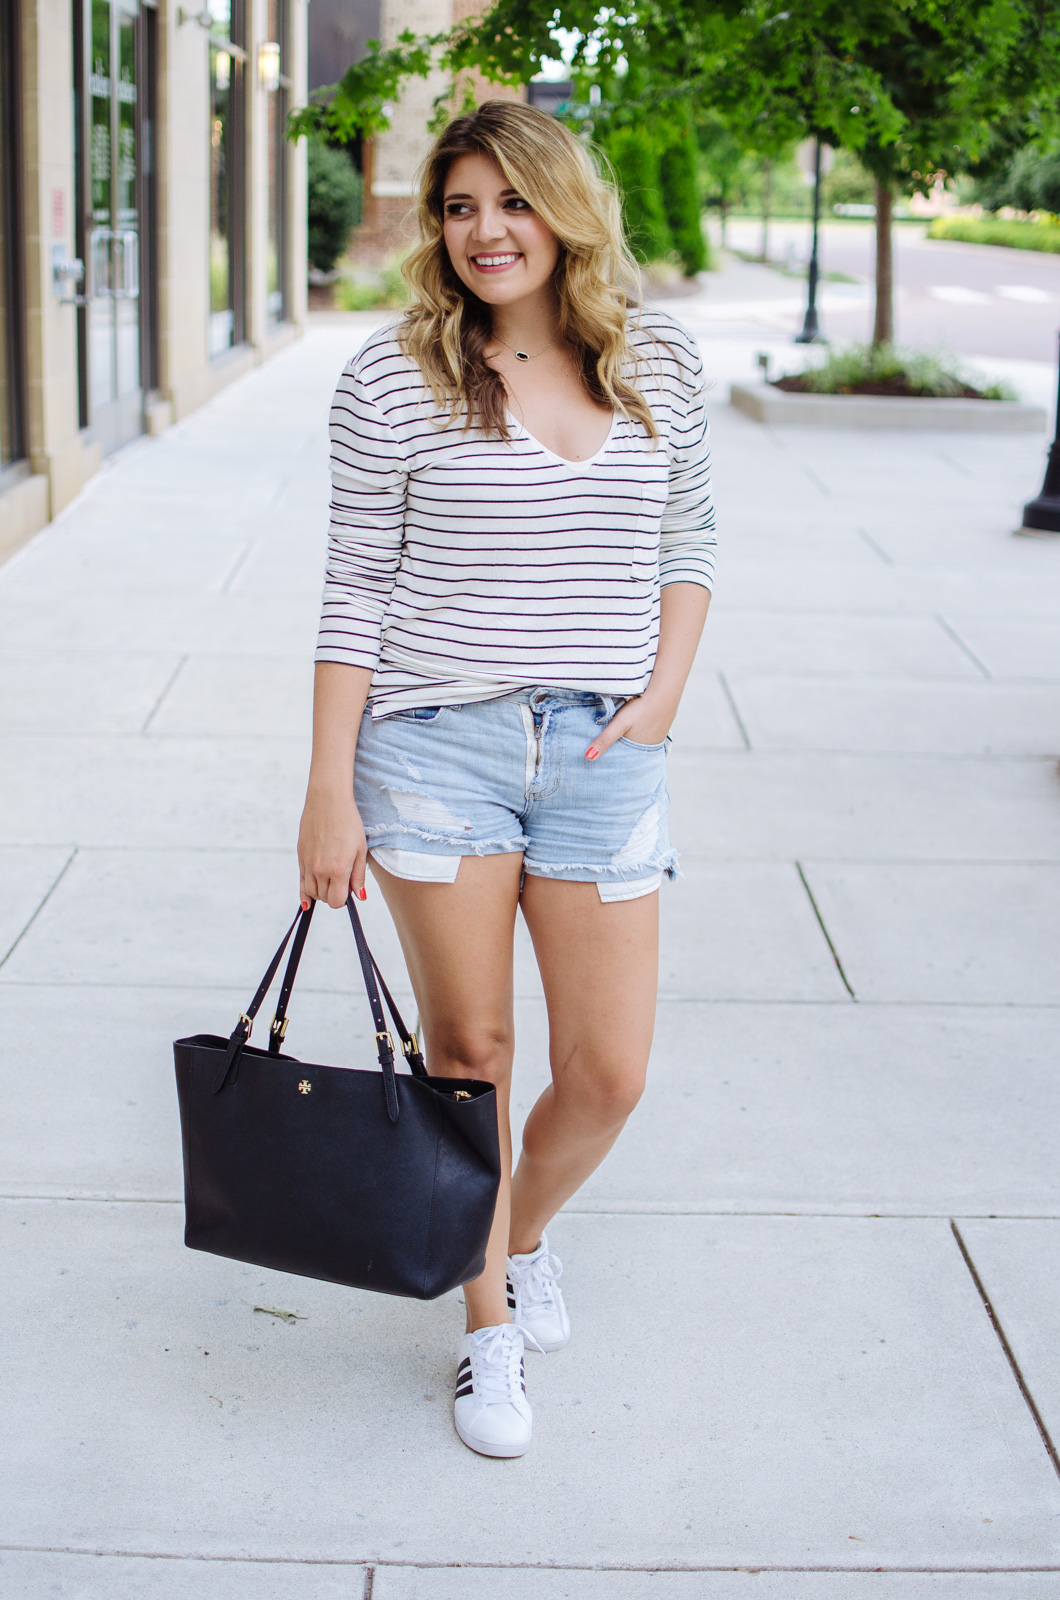 cute mom casual outfit - stripes and sneakers | For more mother daughter outfits, head to bylaurenm.com!